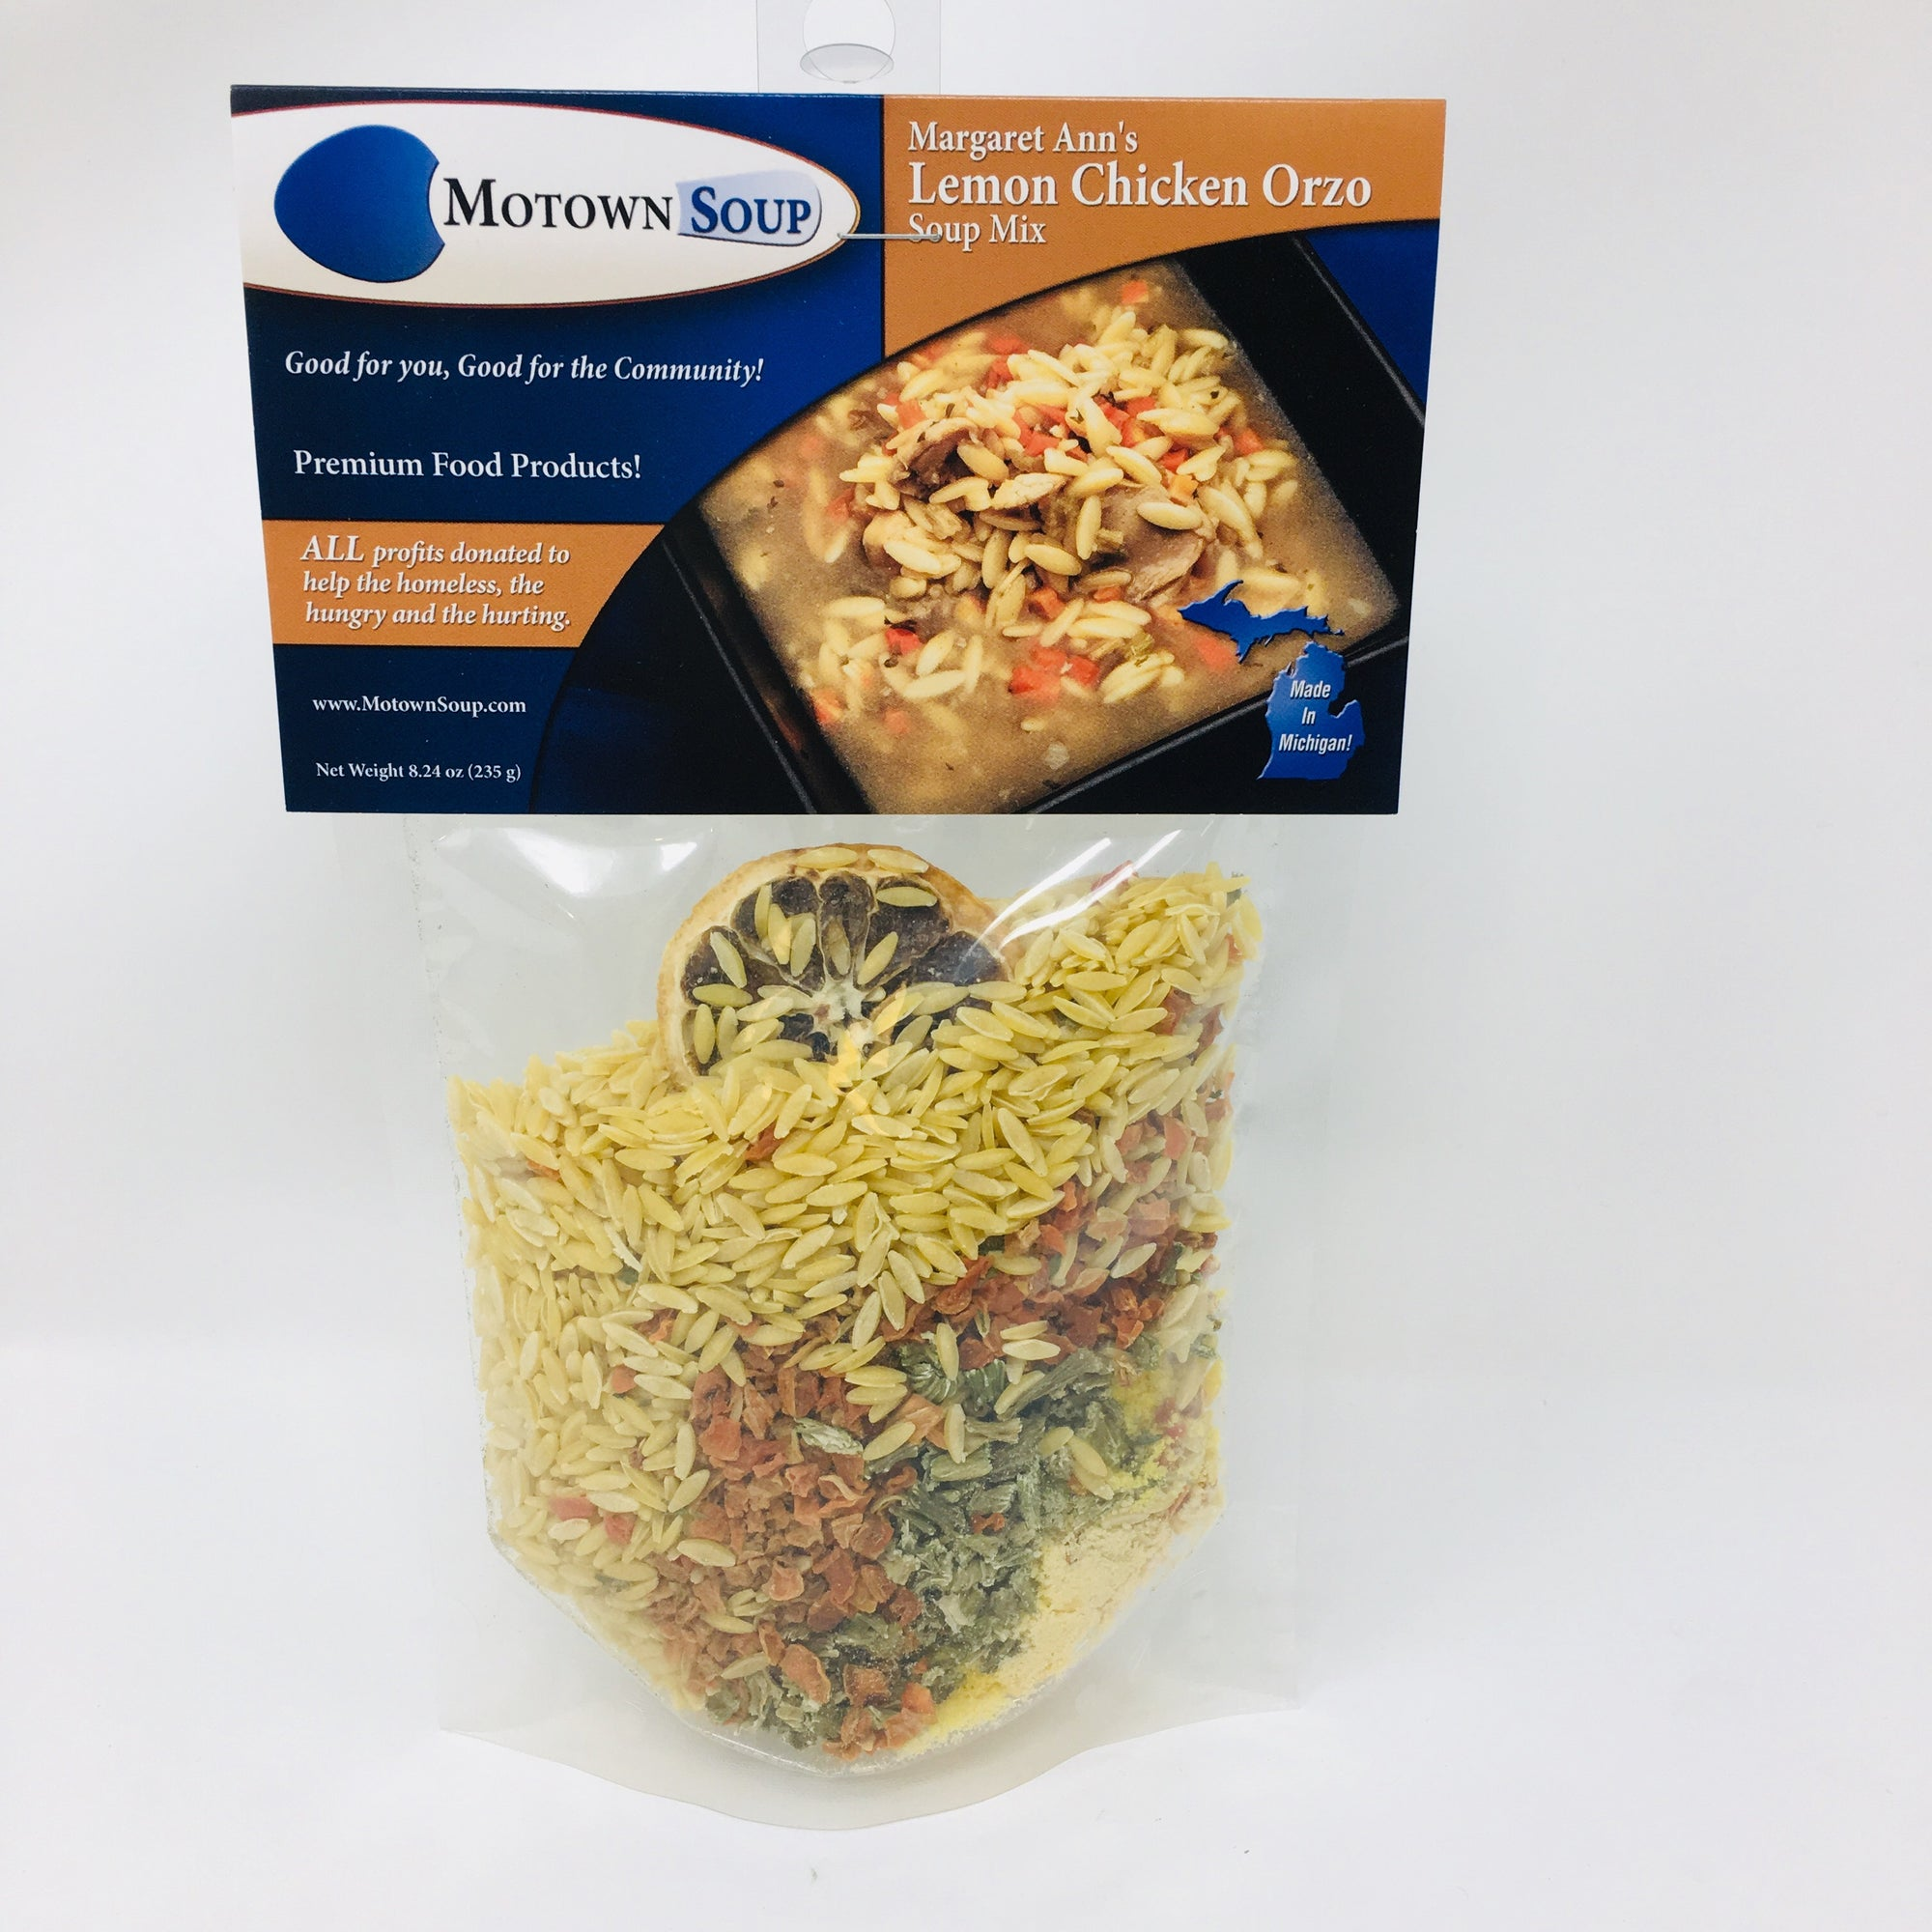 Lemon Chicken Orzo Soup Mix